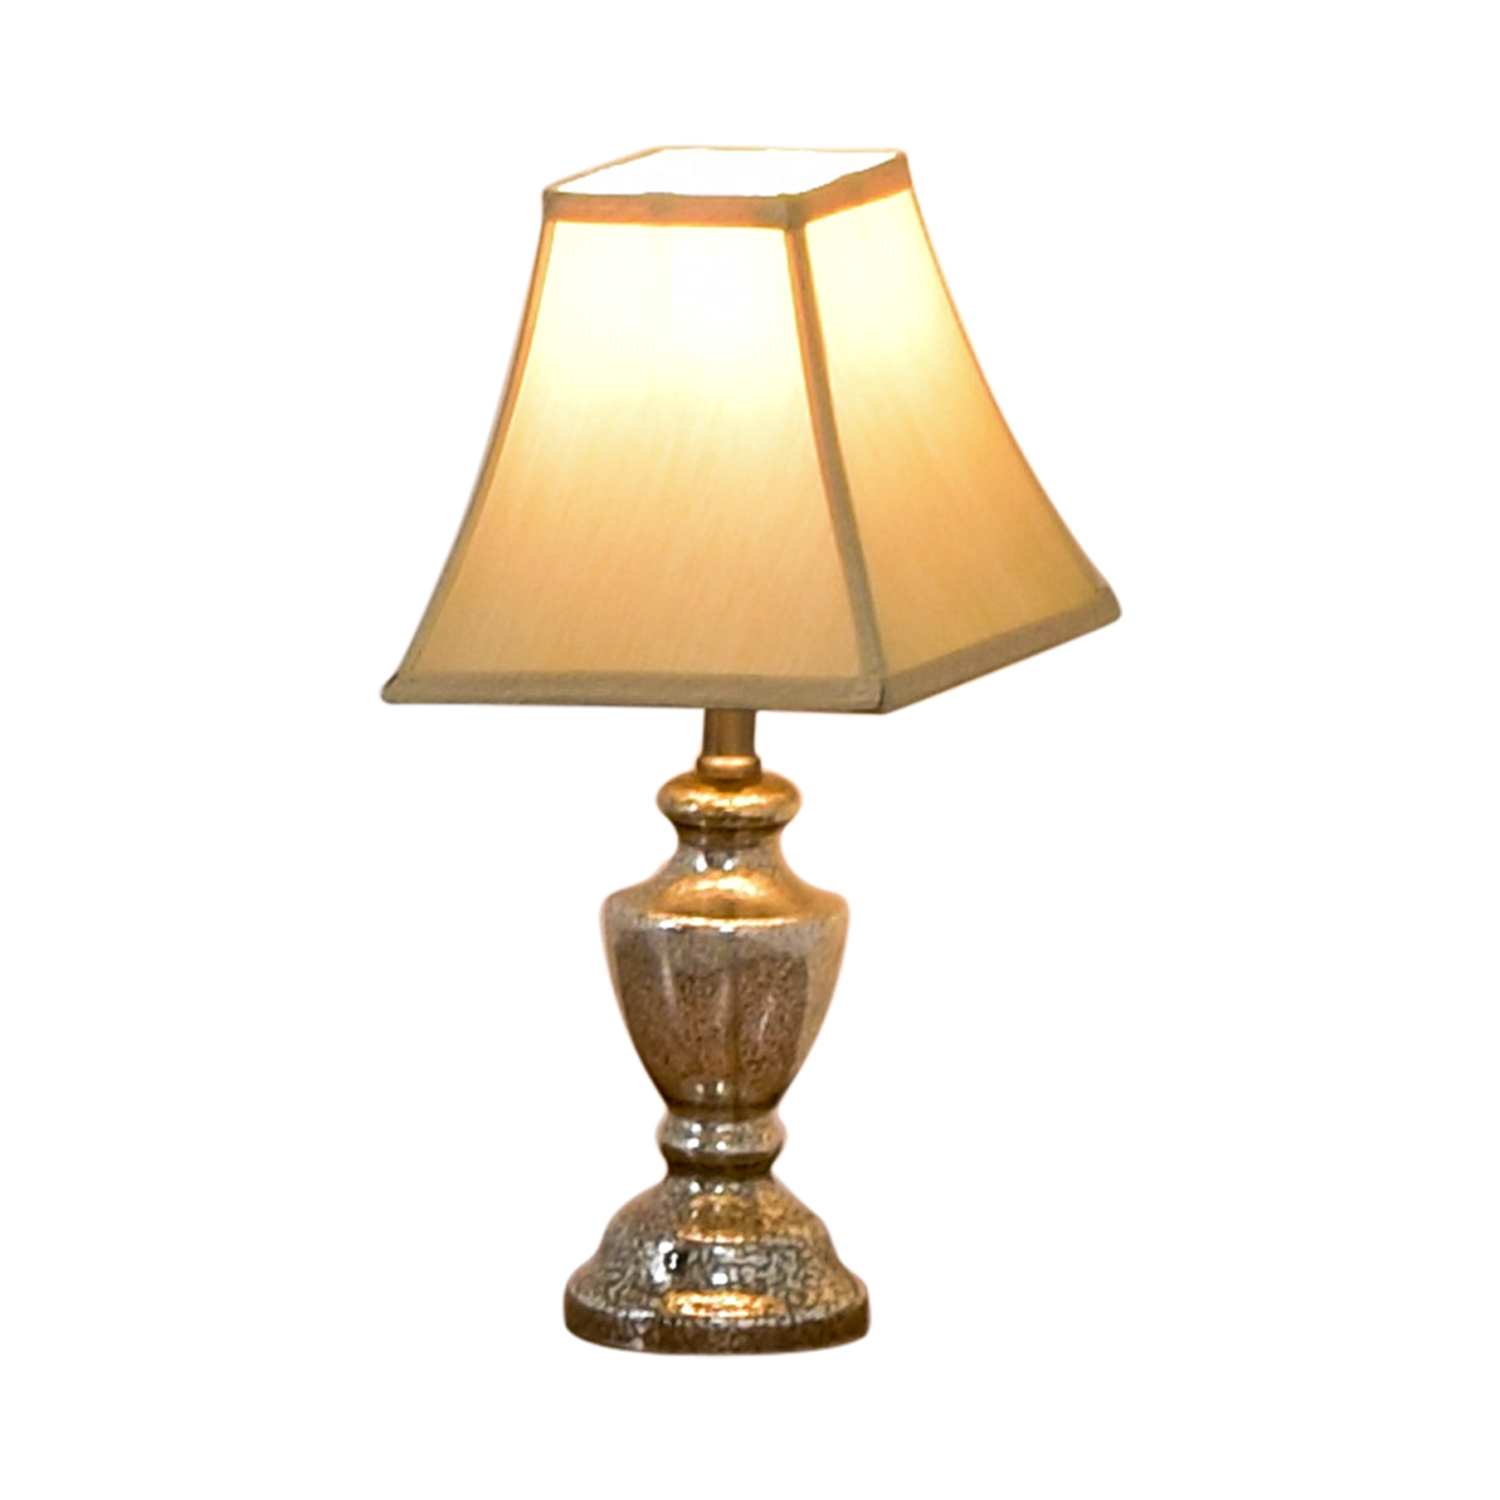 buy Bed Bath and Beyond Slender Mercury Glass Table Lamp Bed Bath and Beyond Lamps